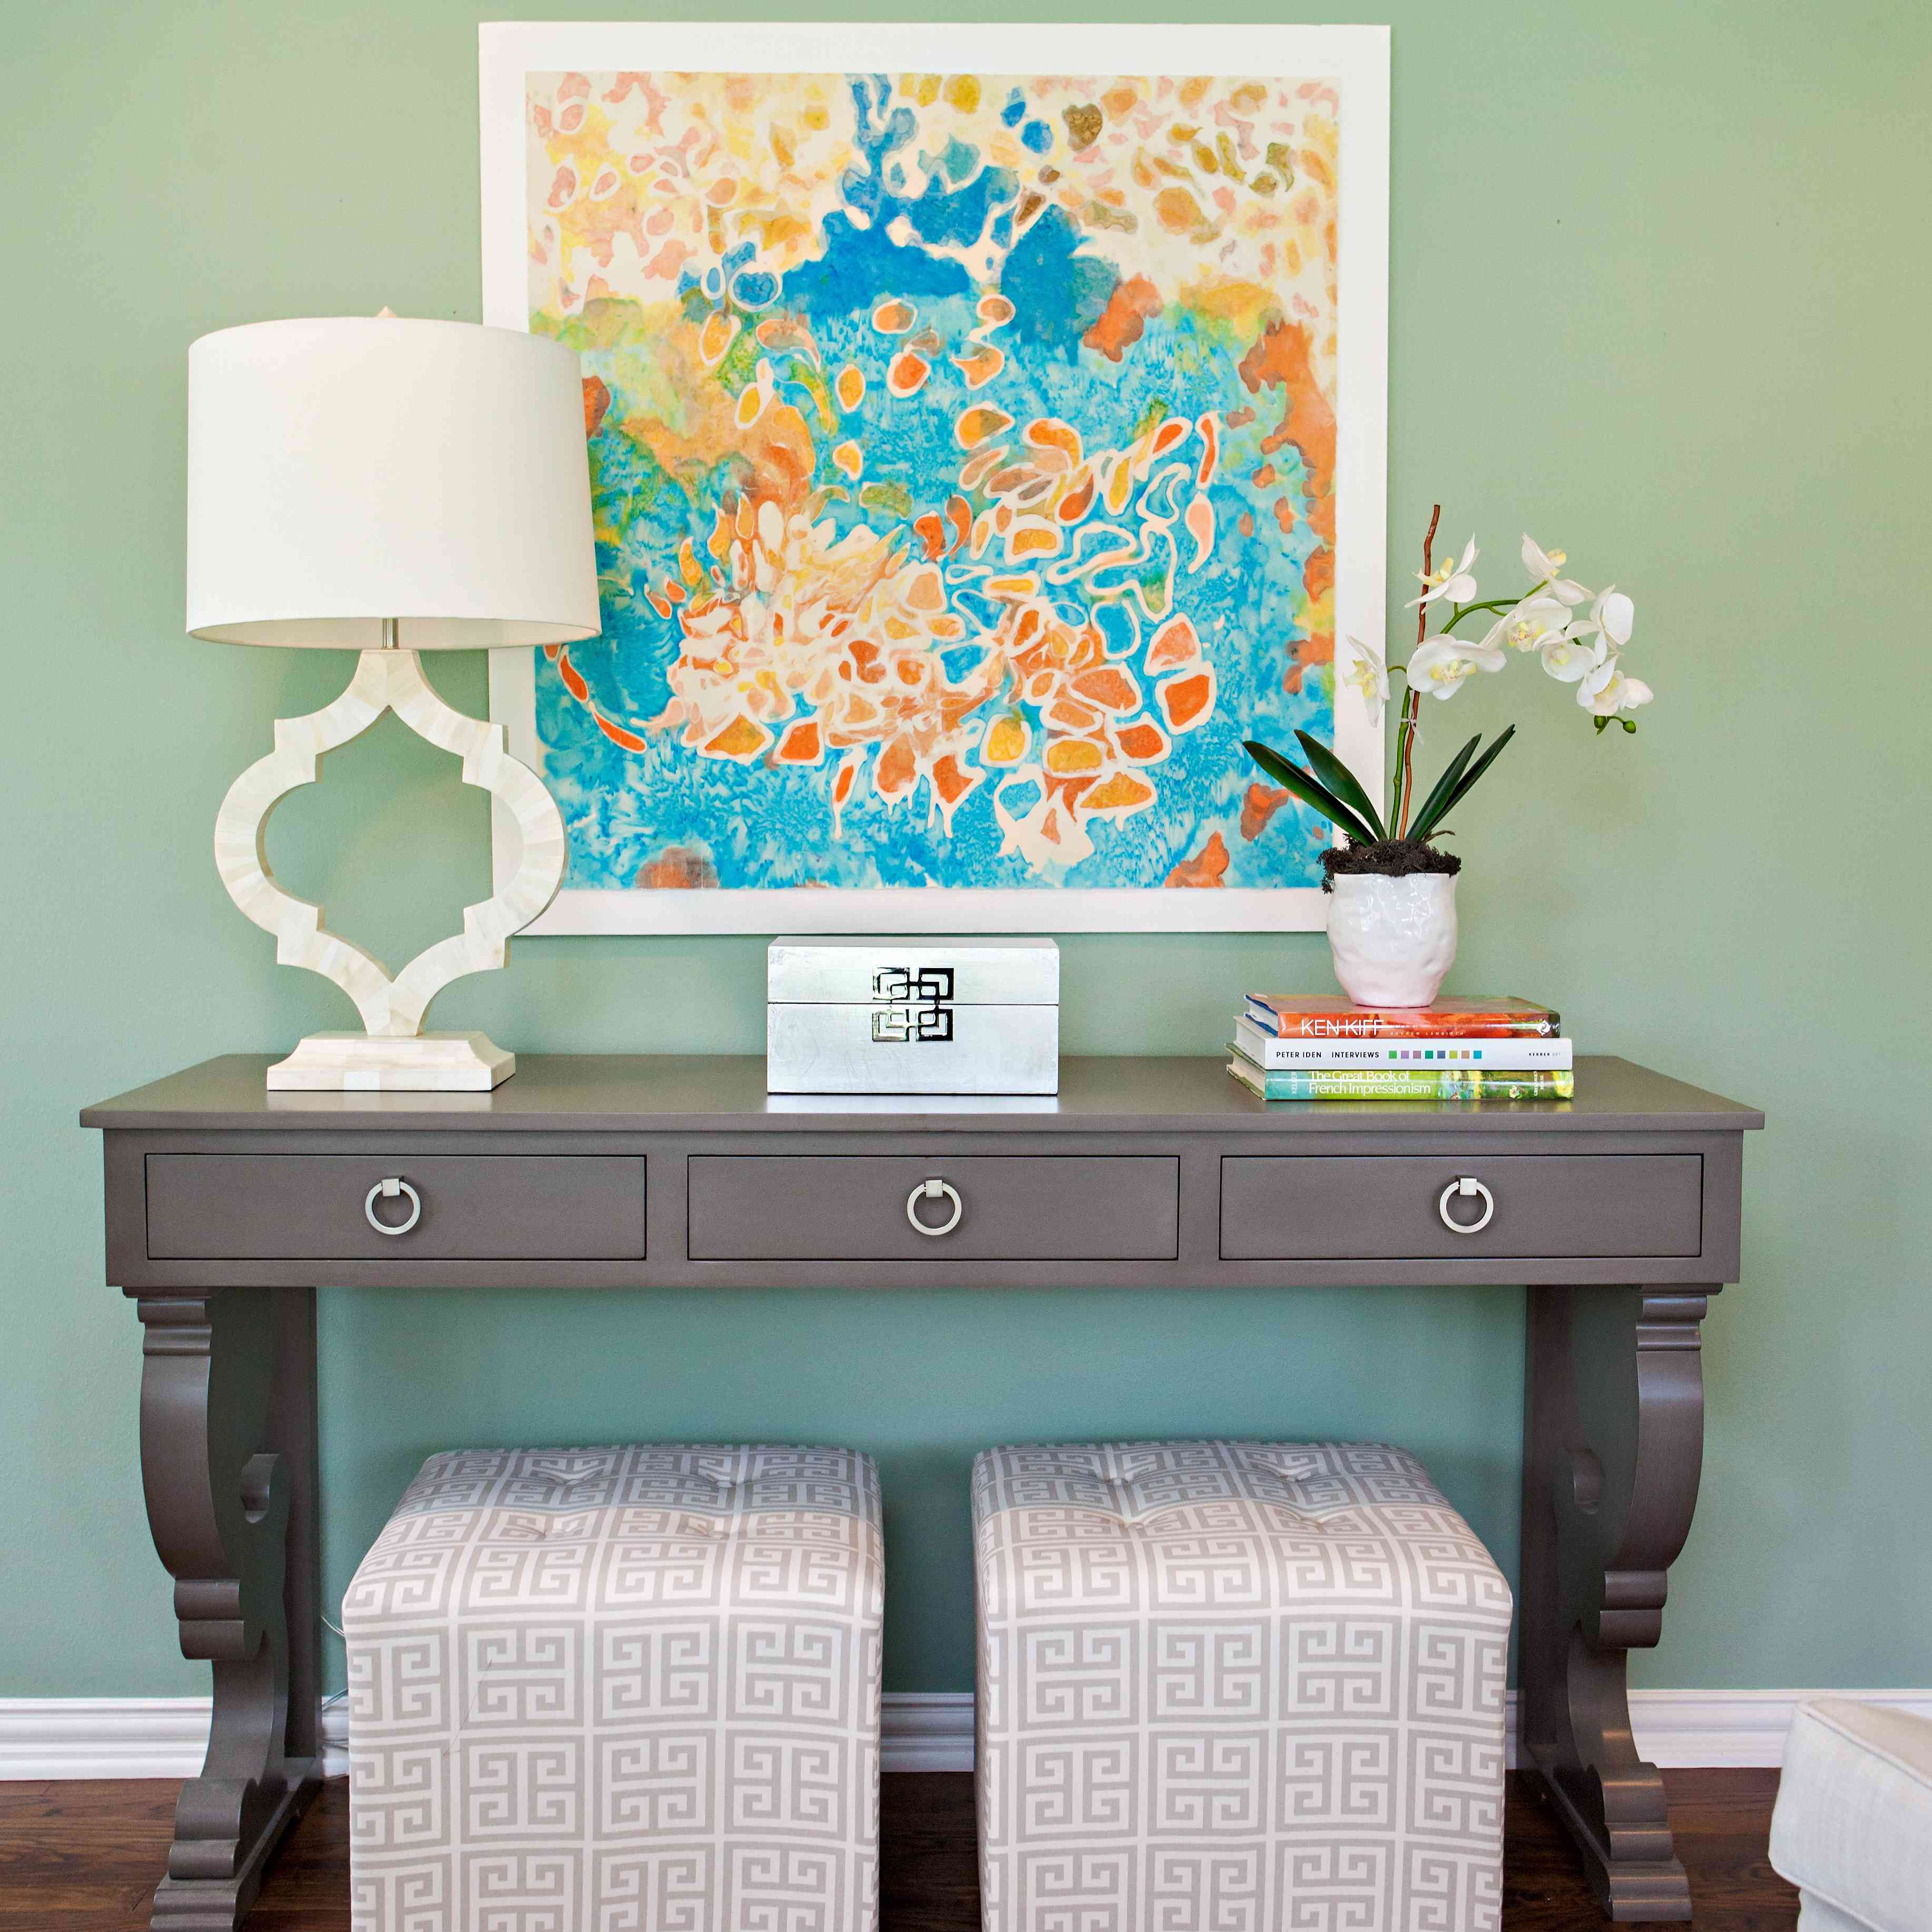 Entryway with blue green walls